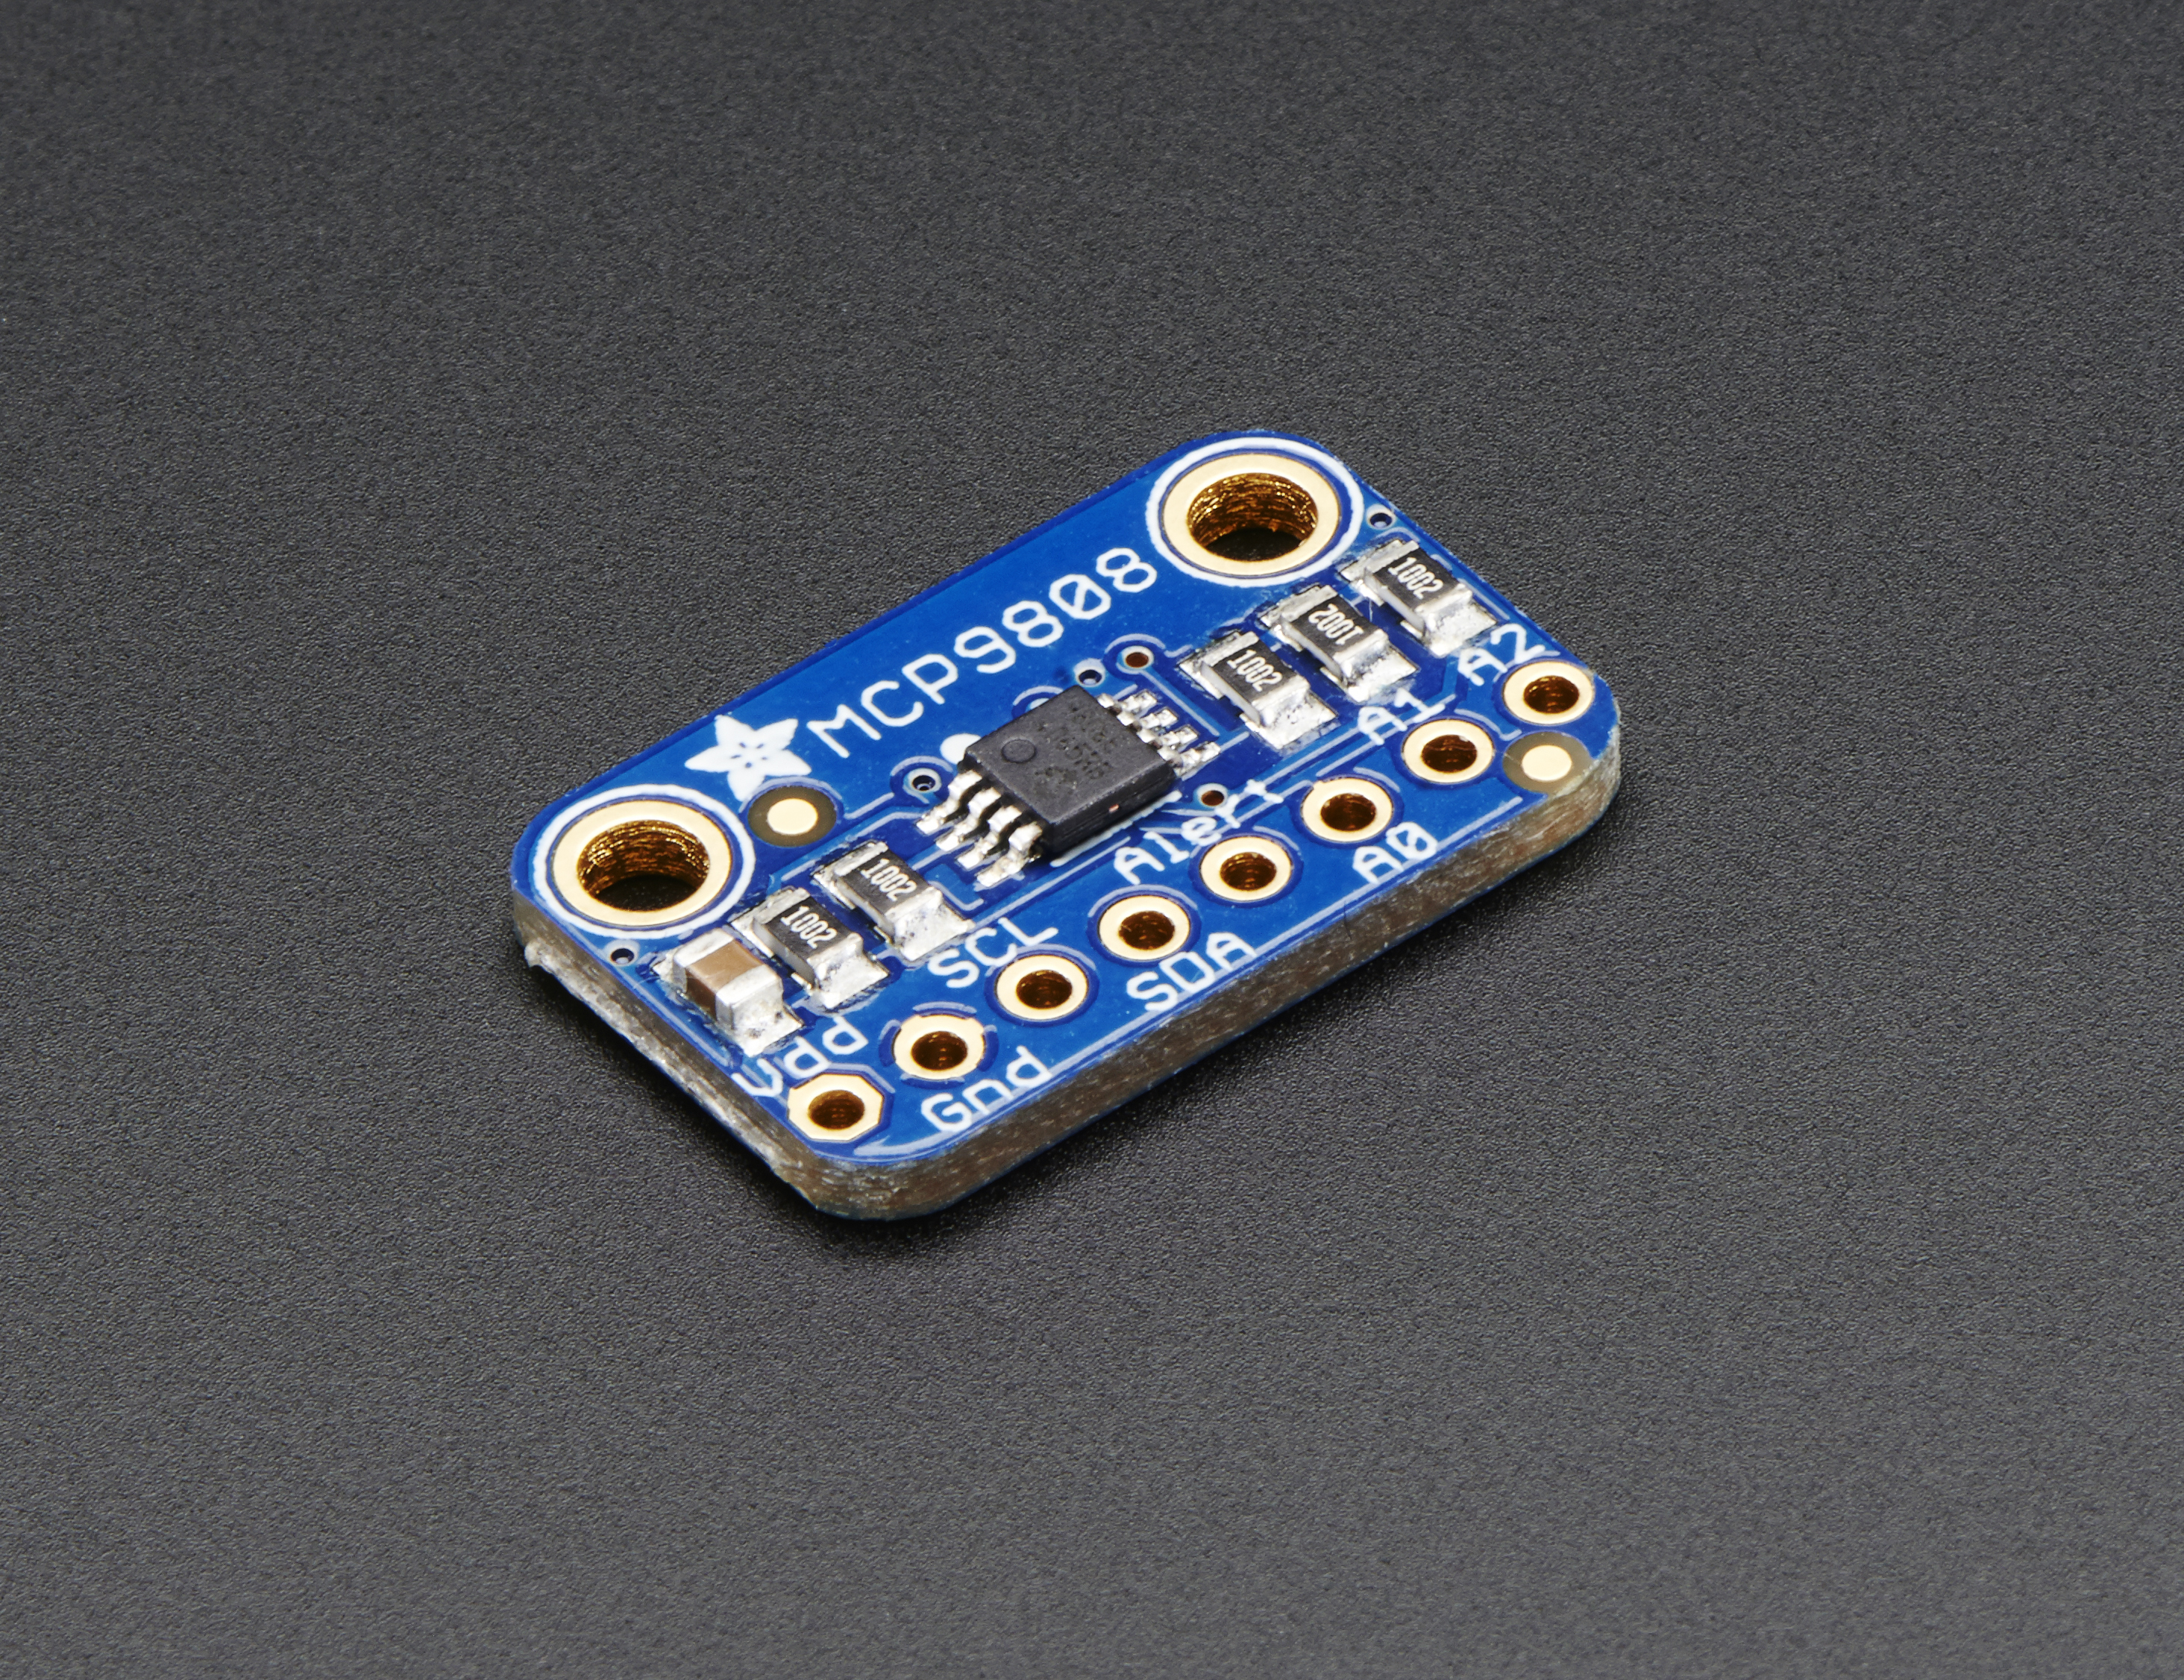 adafruit_products_1782_ORIG.jpg